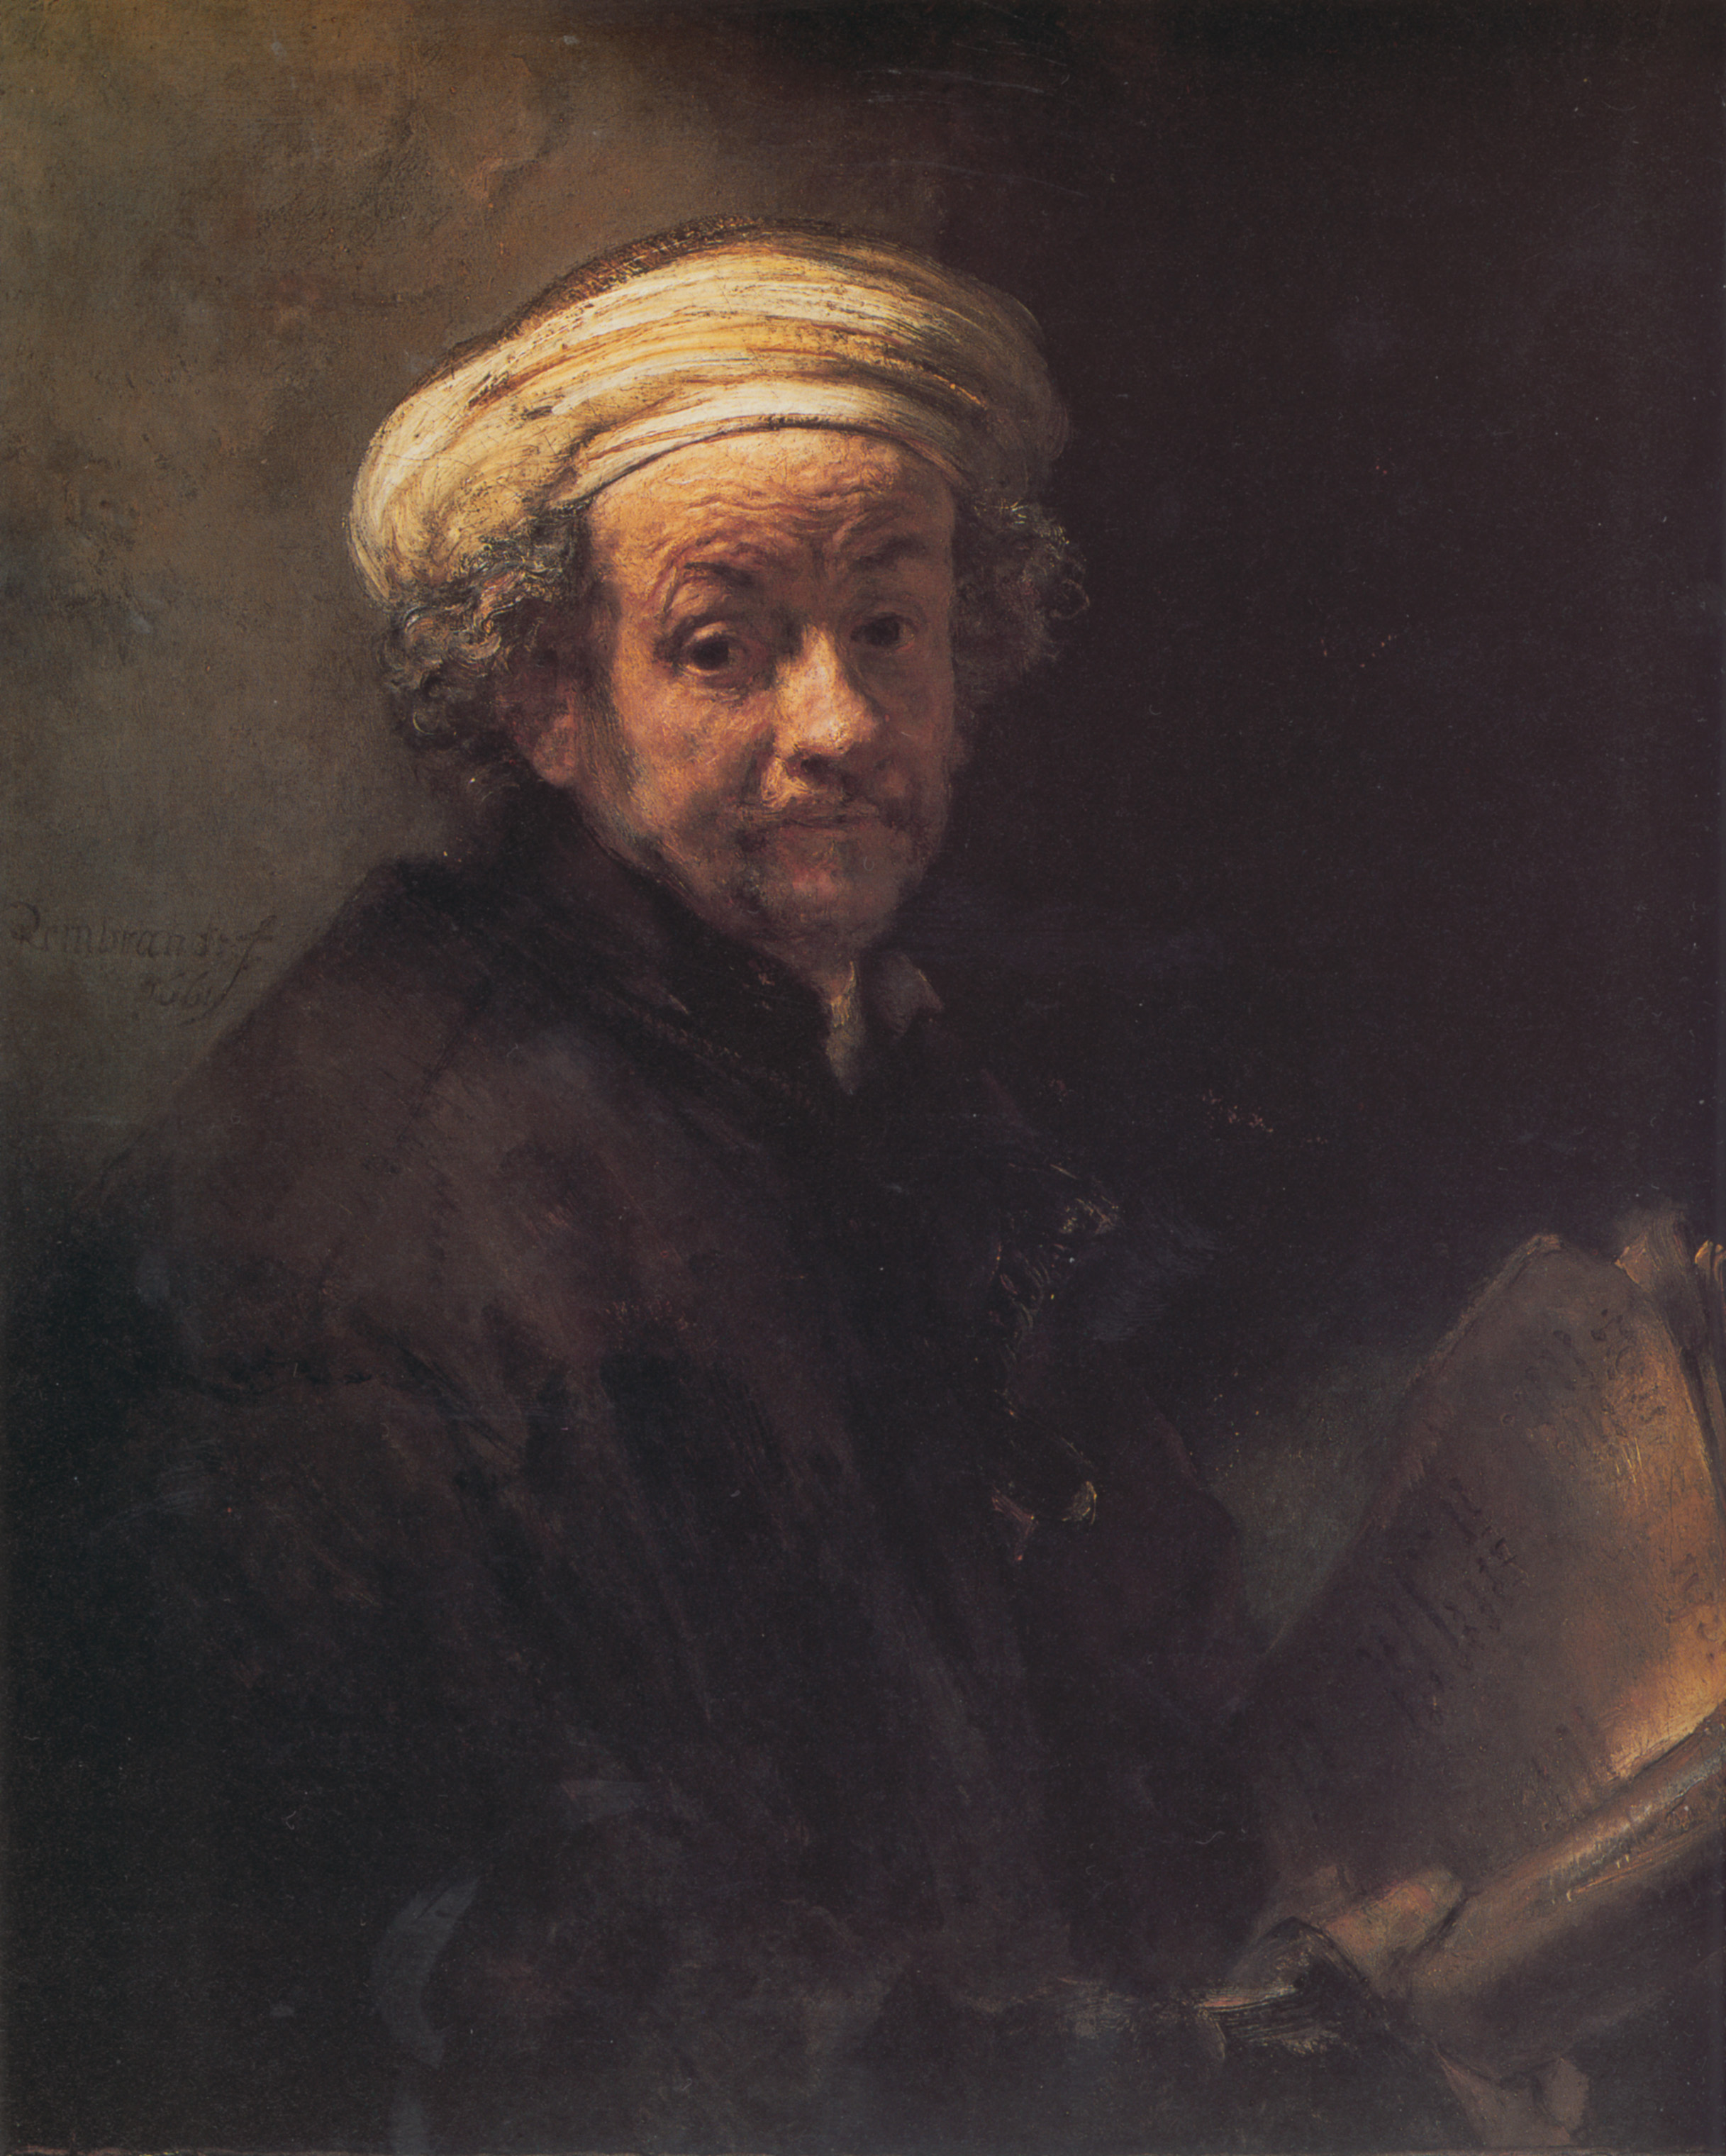 Baroque Painting Style Used By Rembrandt